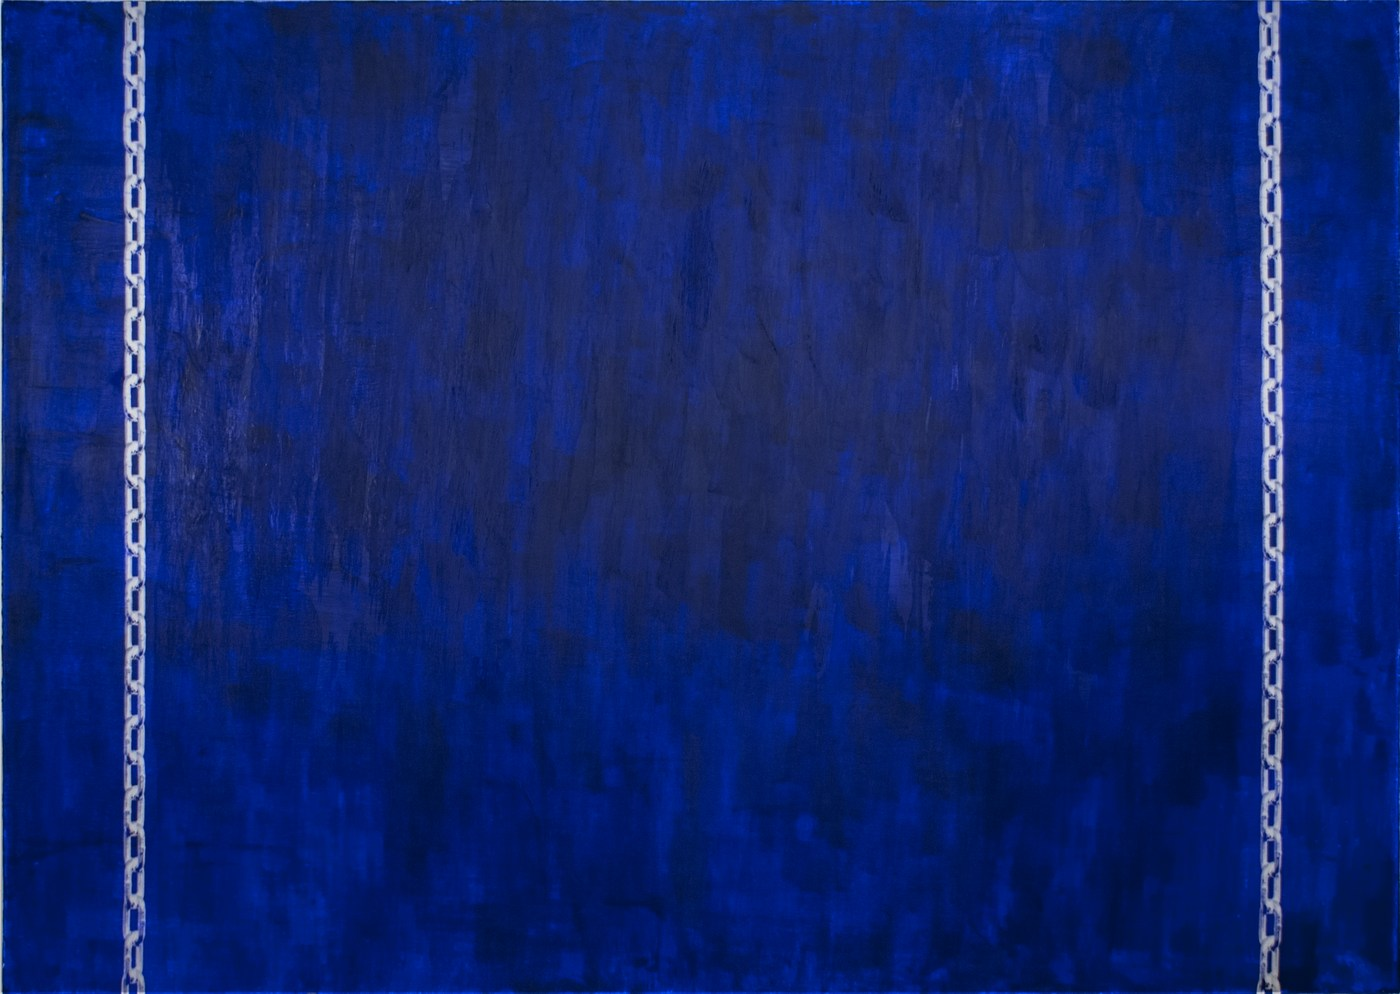 BN - Hanging by Chains (blue), 2014